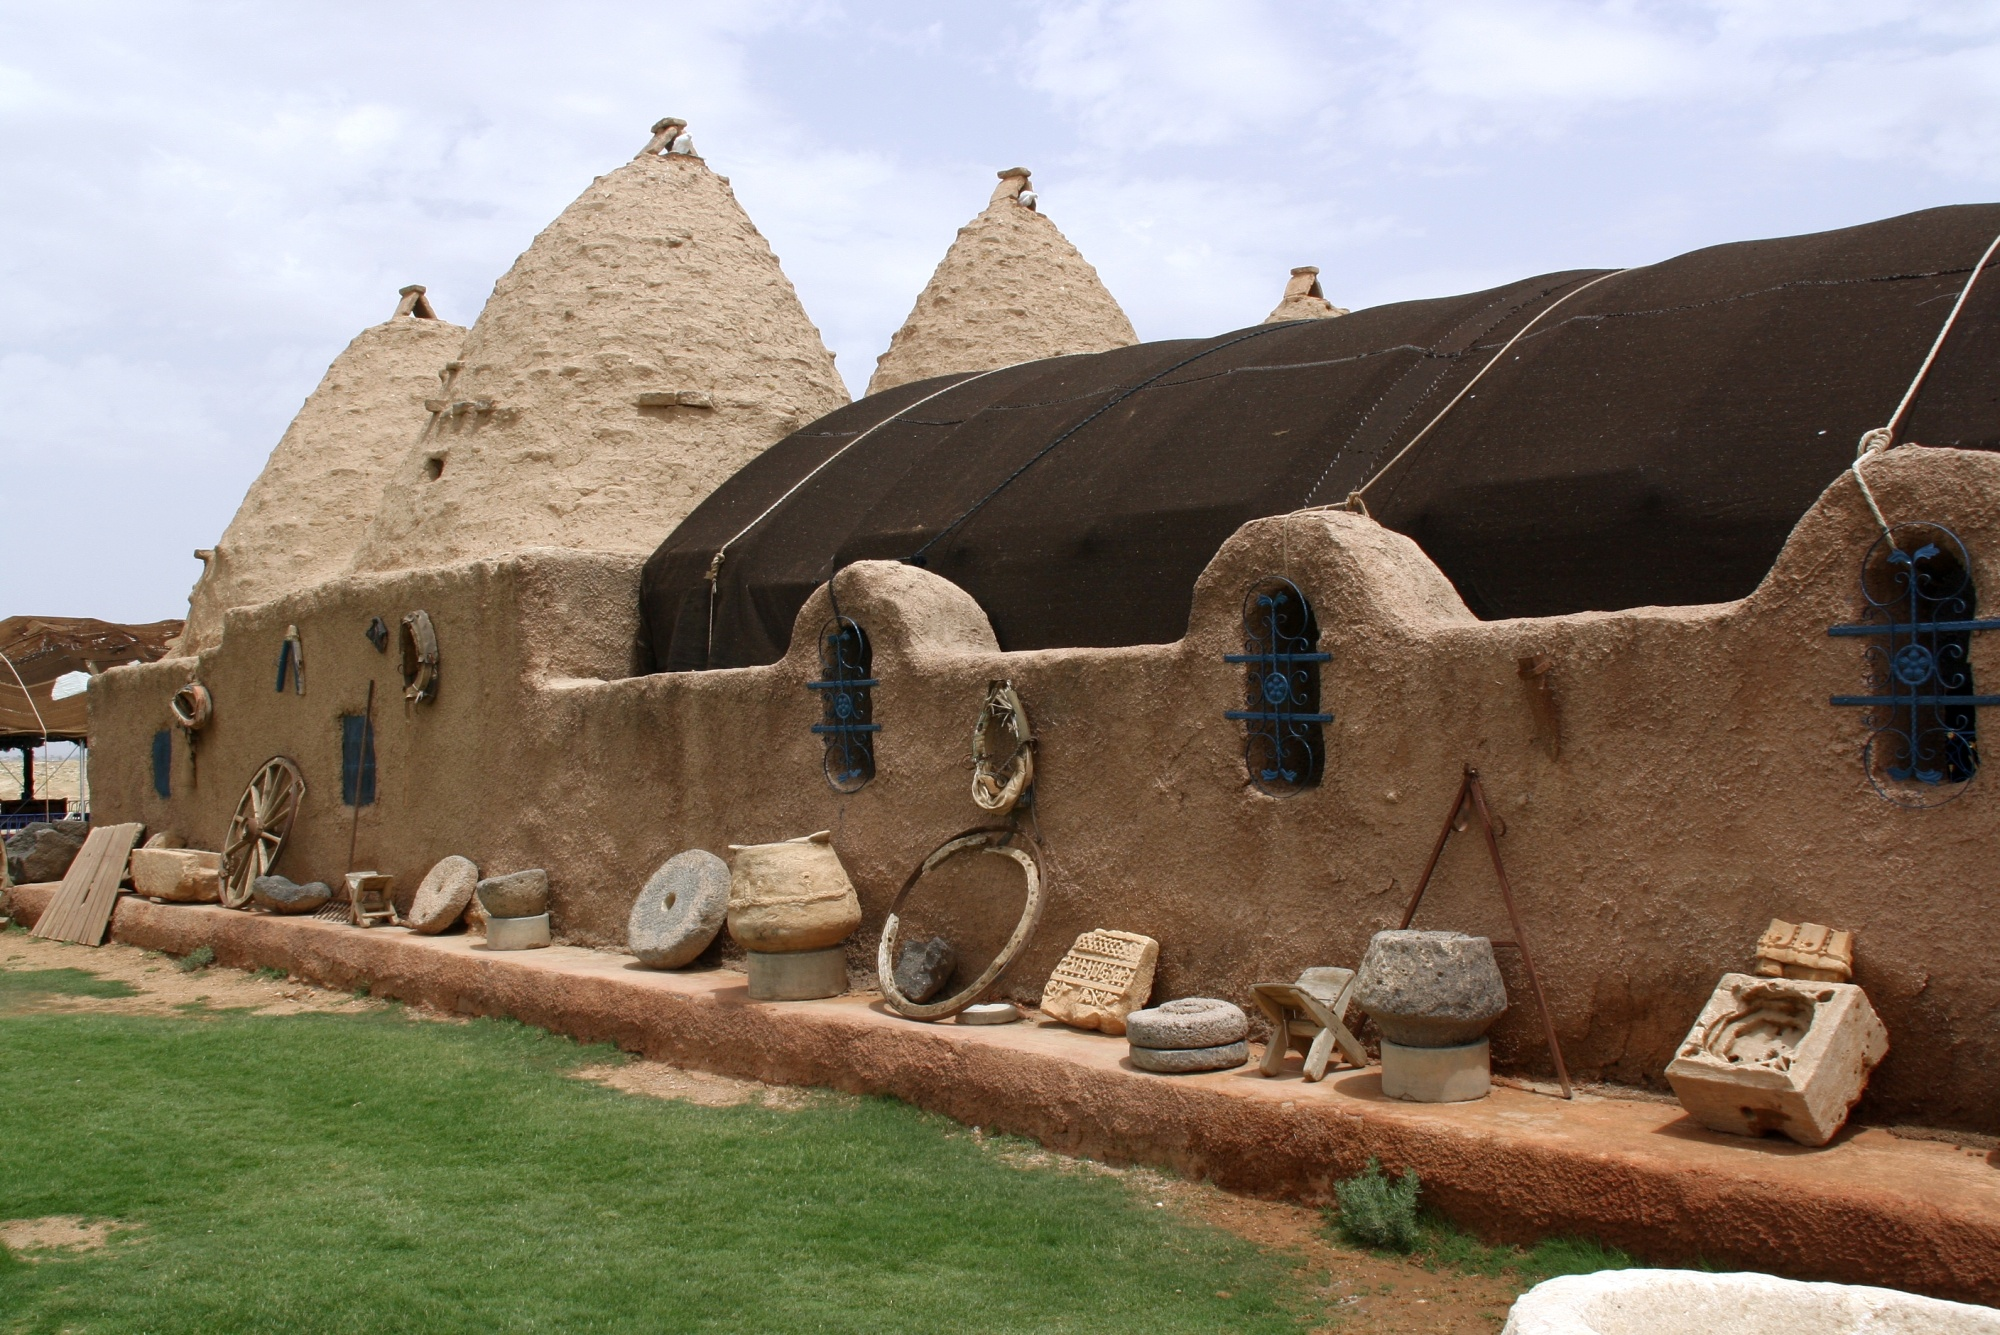 Harran beehive houses (2018)